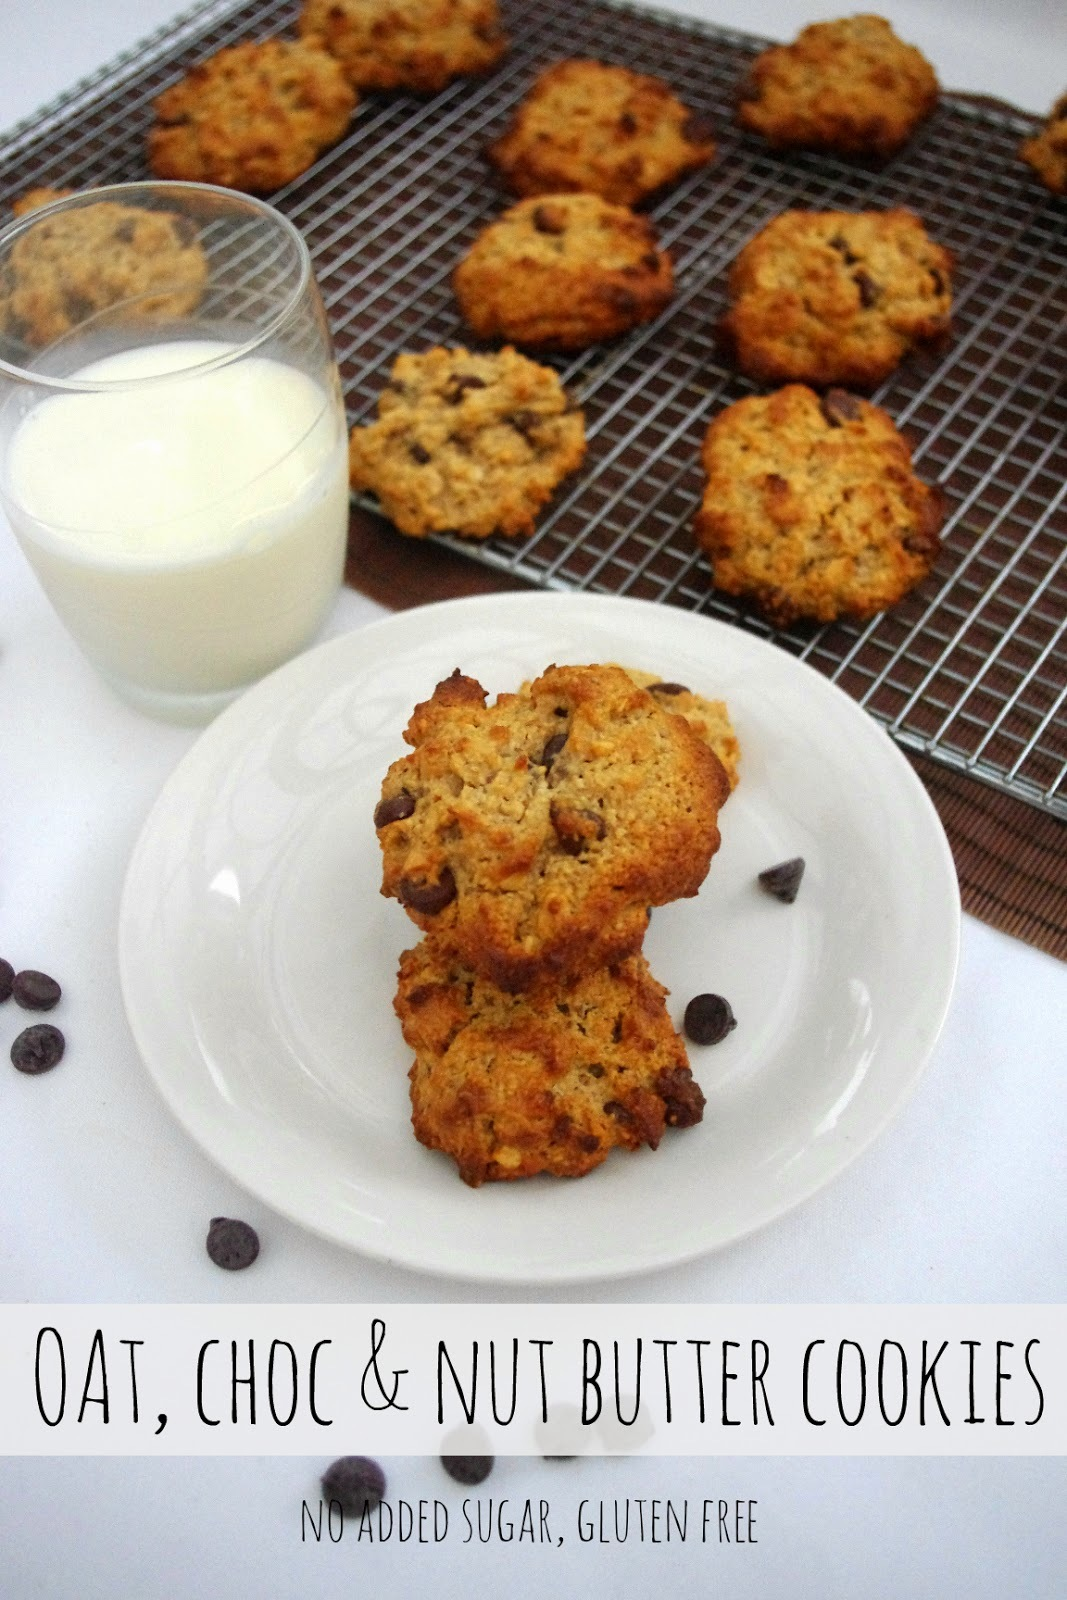 Oat, chocolate and nut butter cookies (gluten and sugar free)